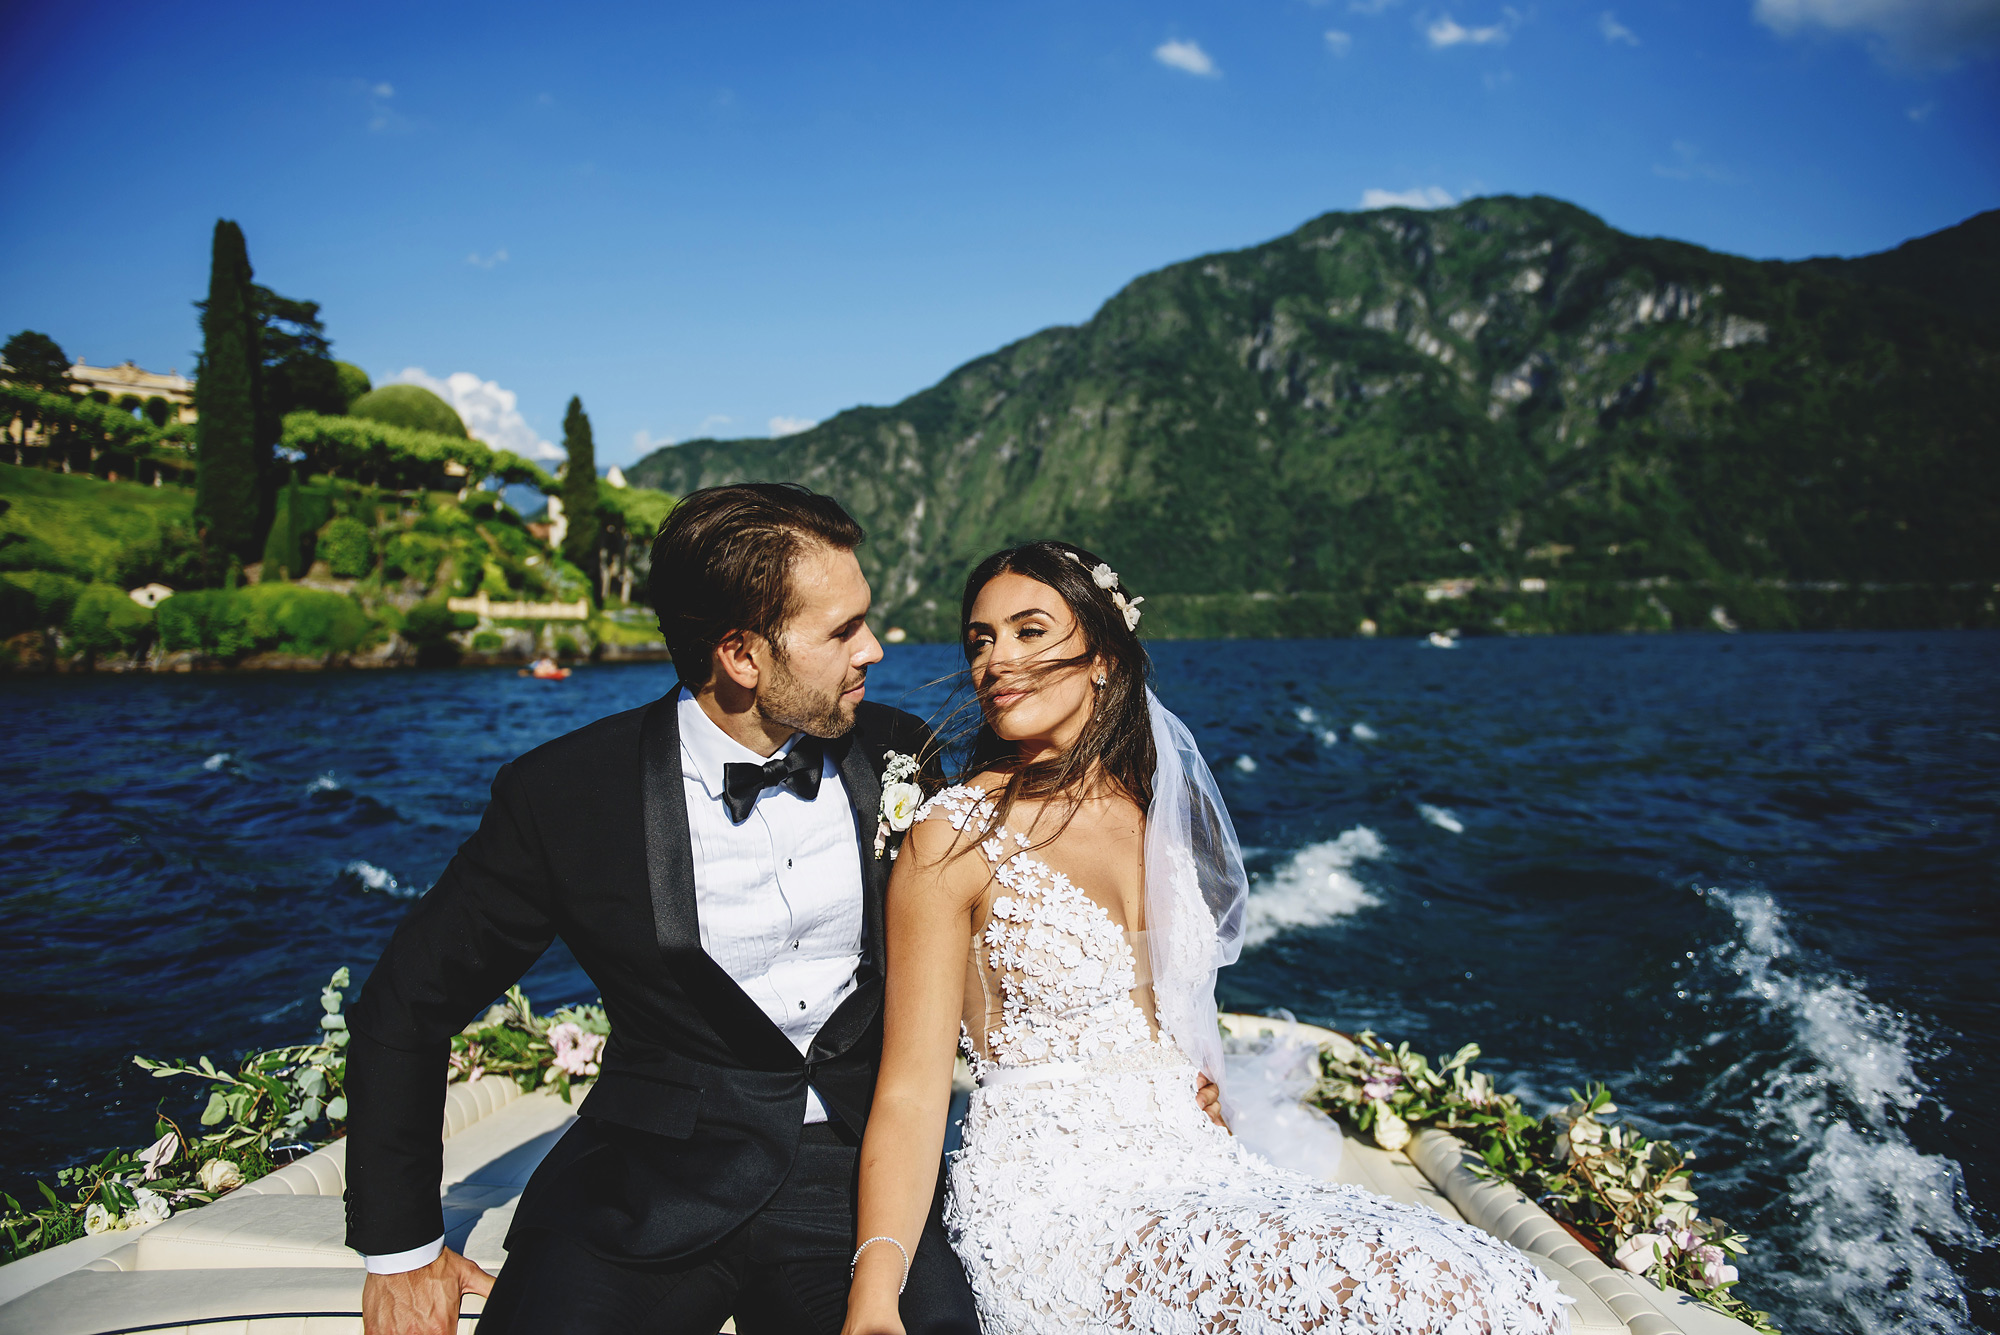 Couple leaving Villa d'Este in boat - photo by Ross Harvey